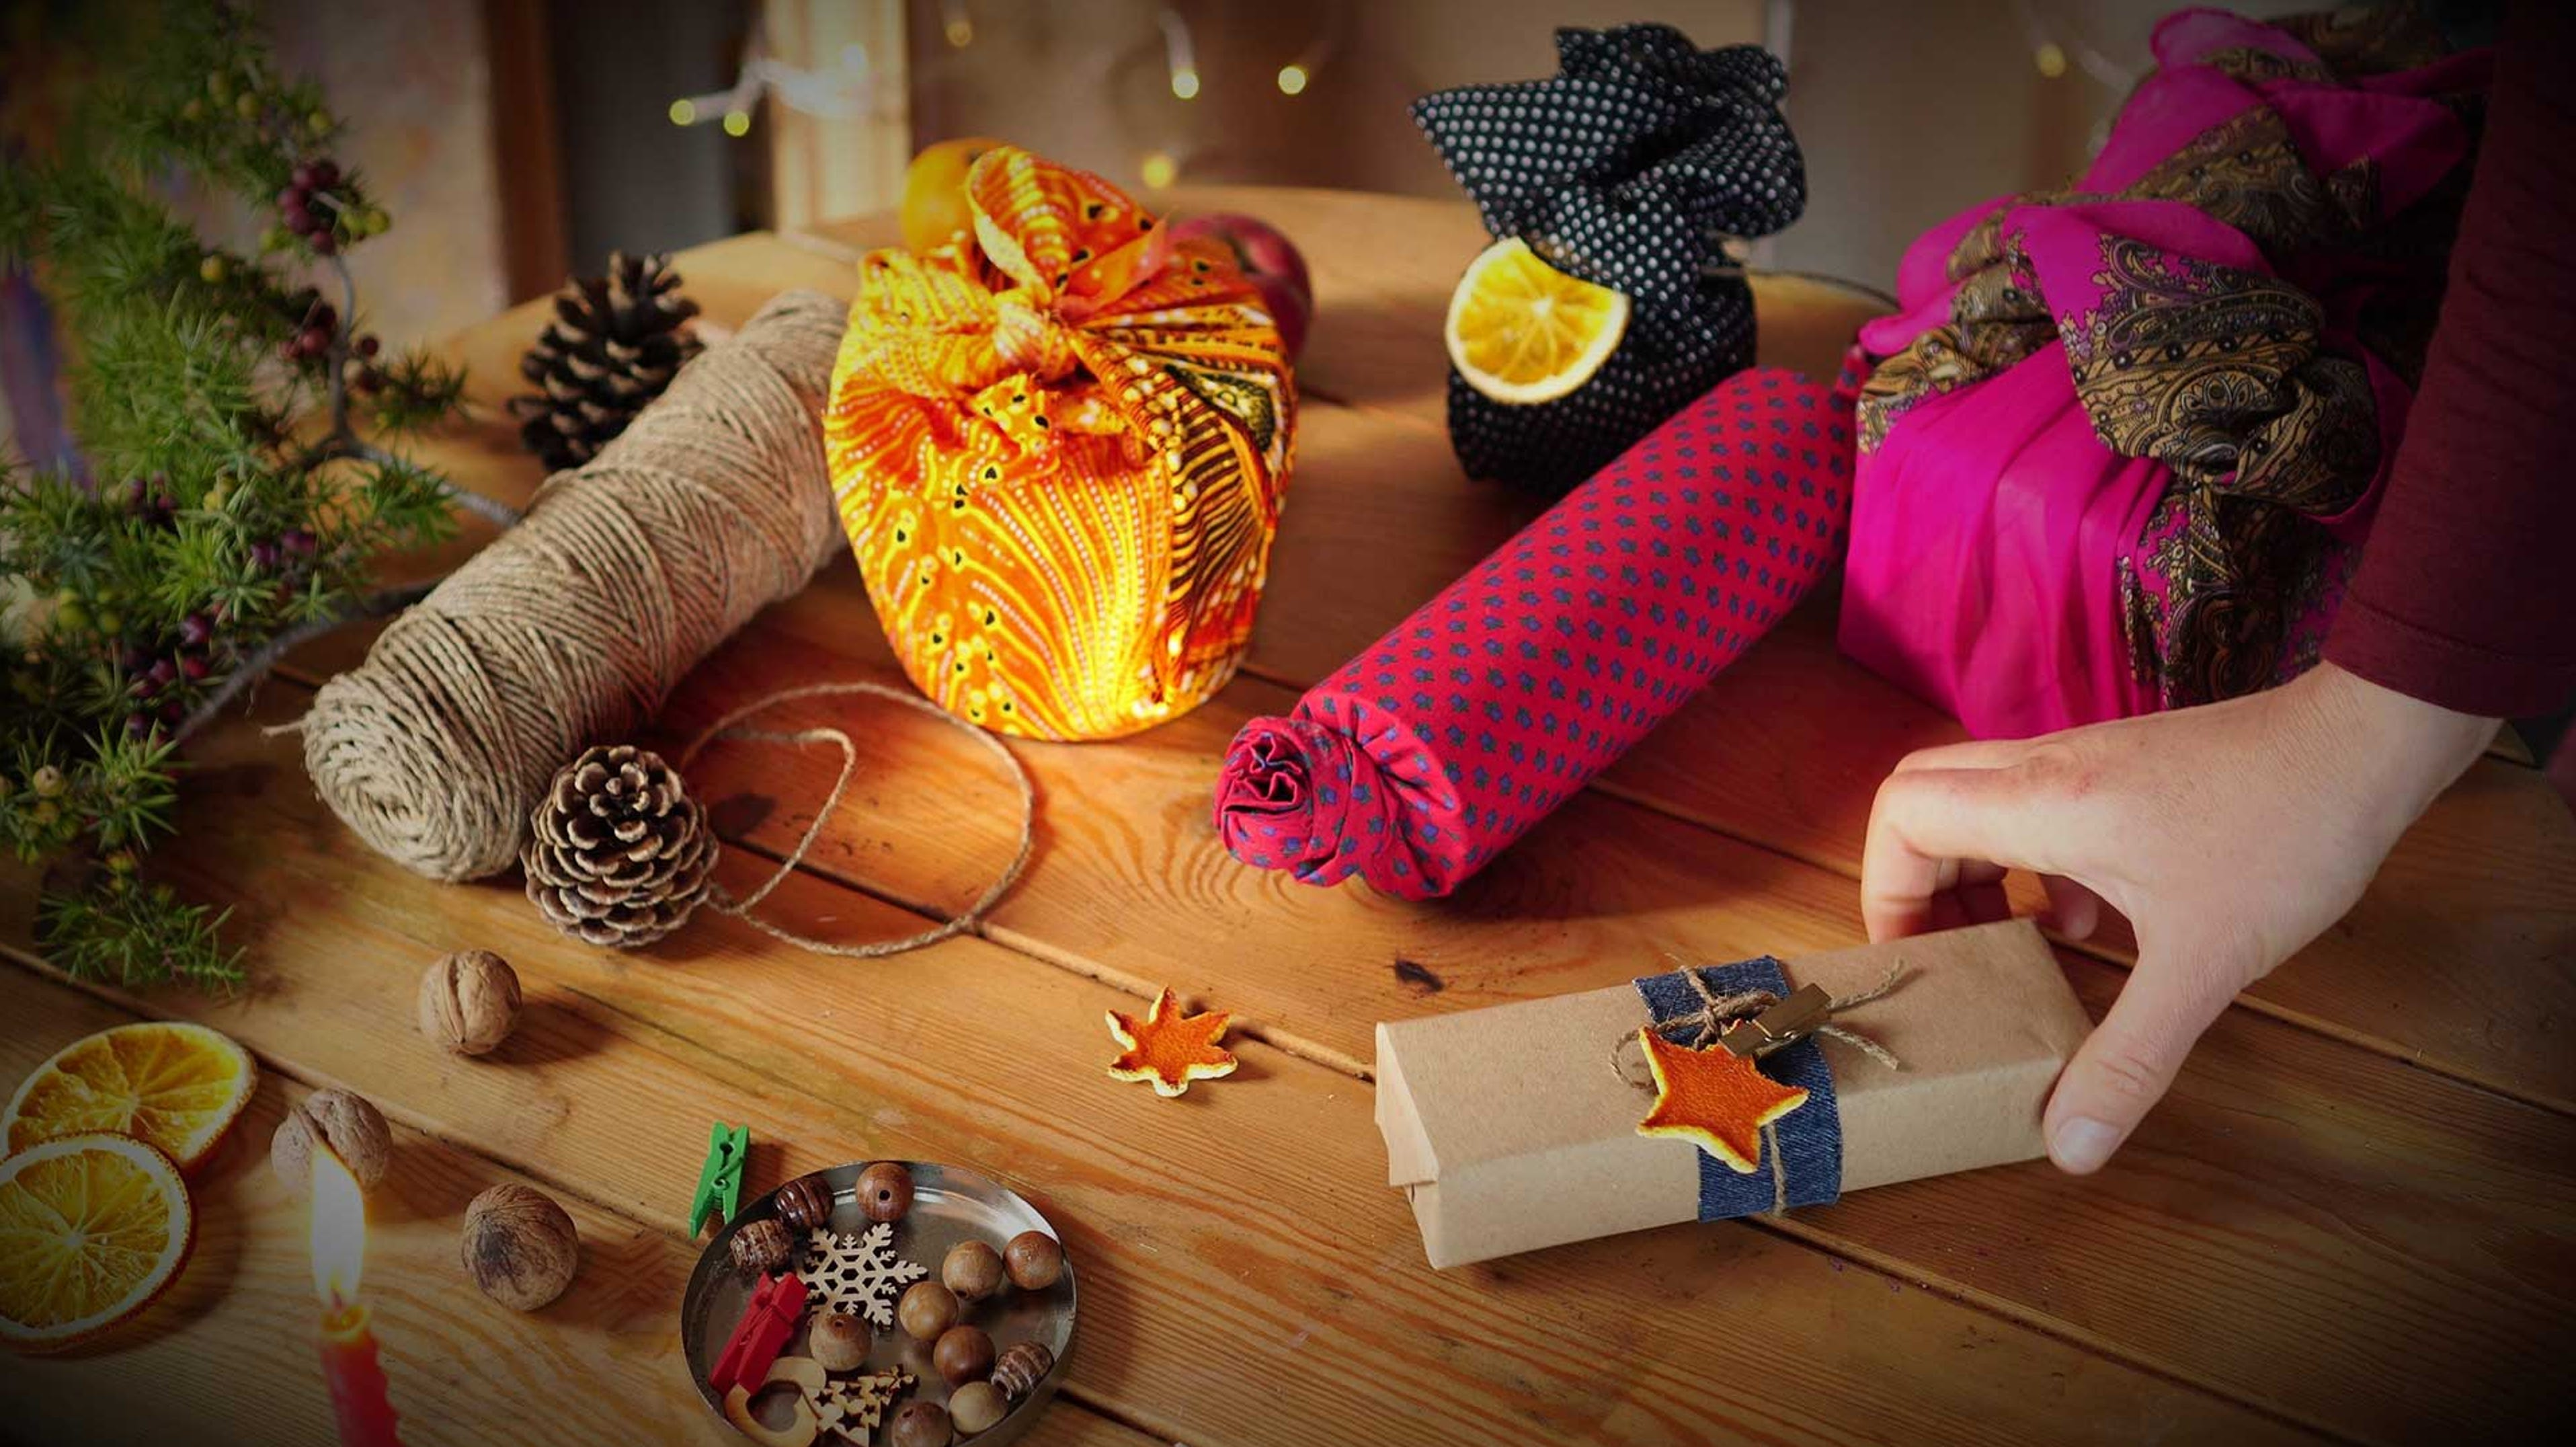 8 Creative Ways To Wrap Gifts Without Wrapping Paper Lifesavvy